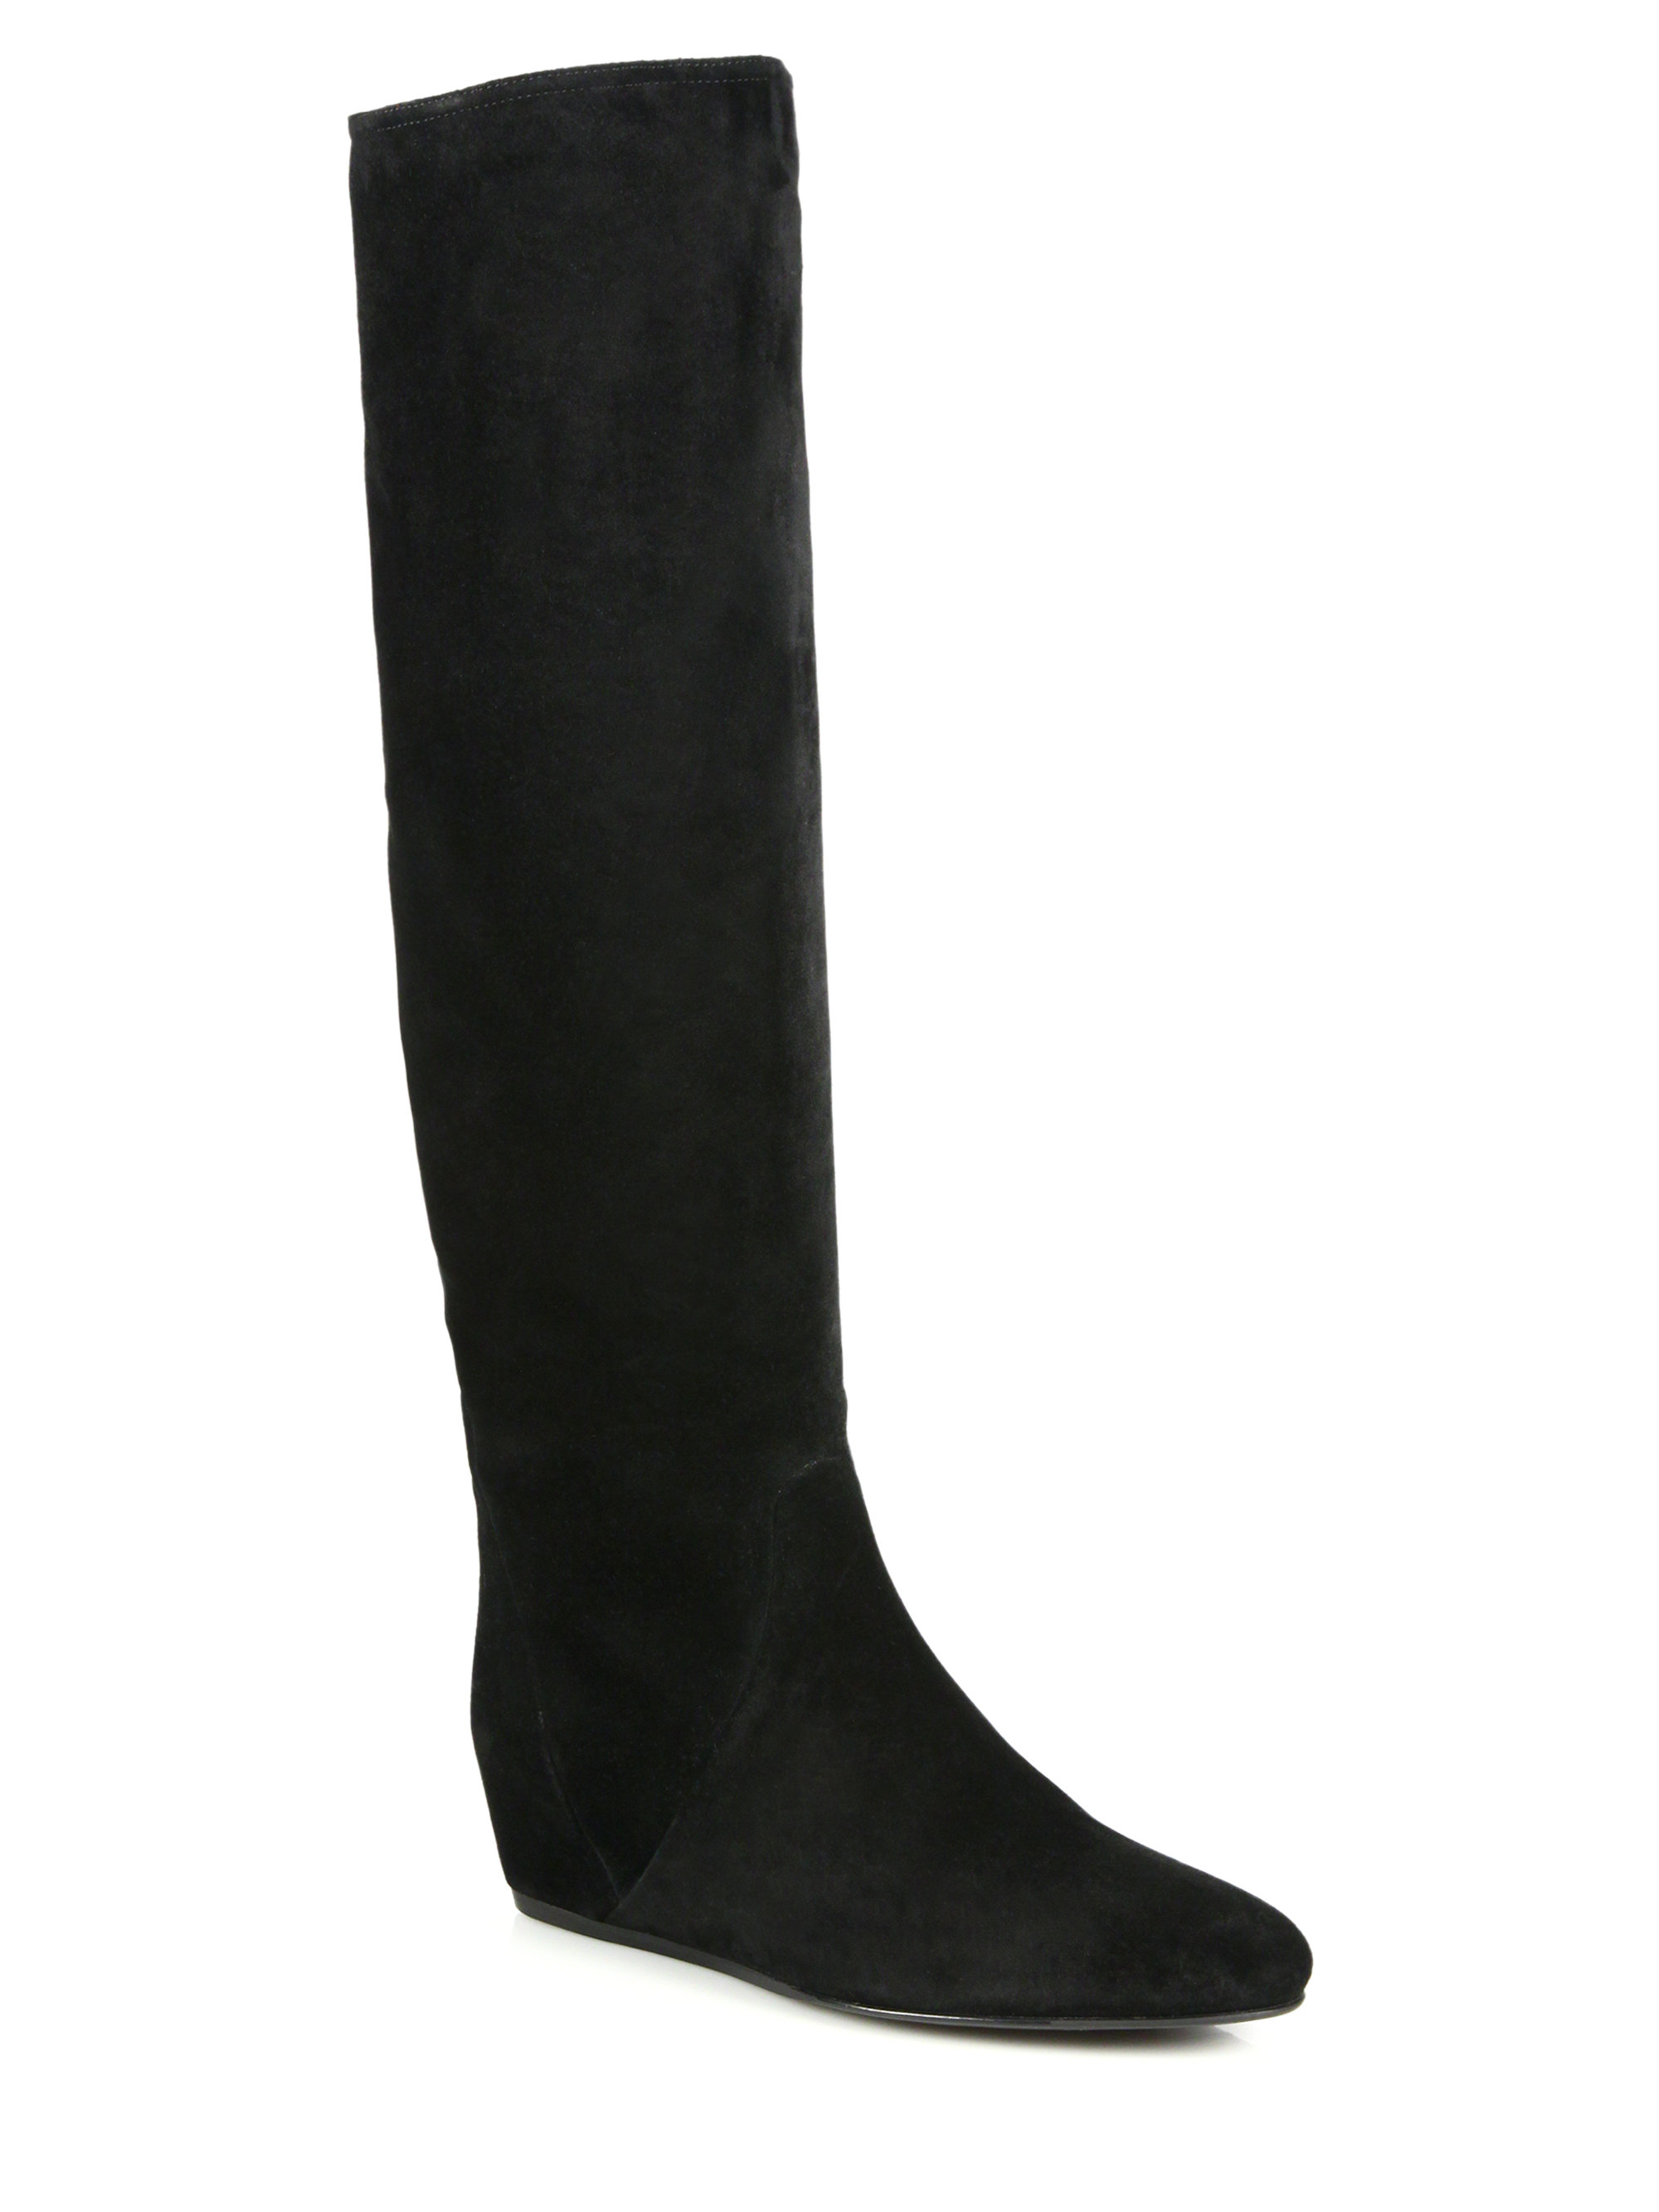 lanvin suede knee high wedge boots in black lyst